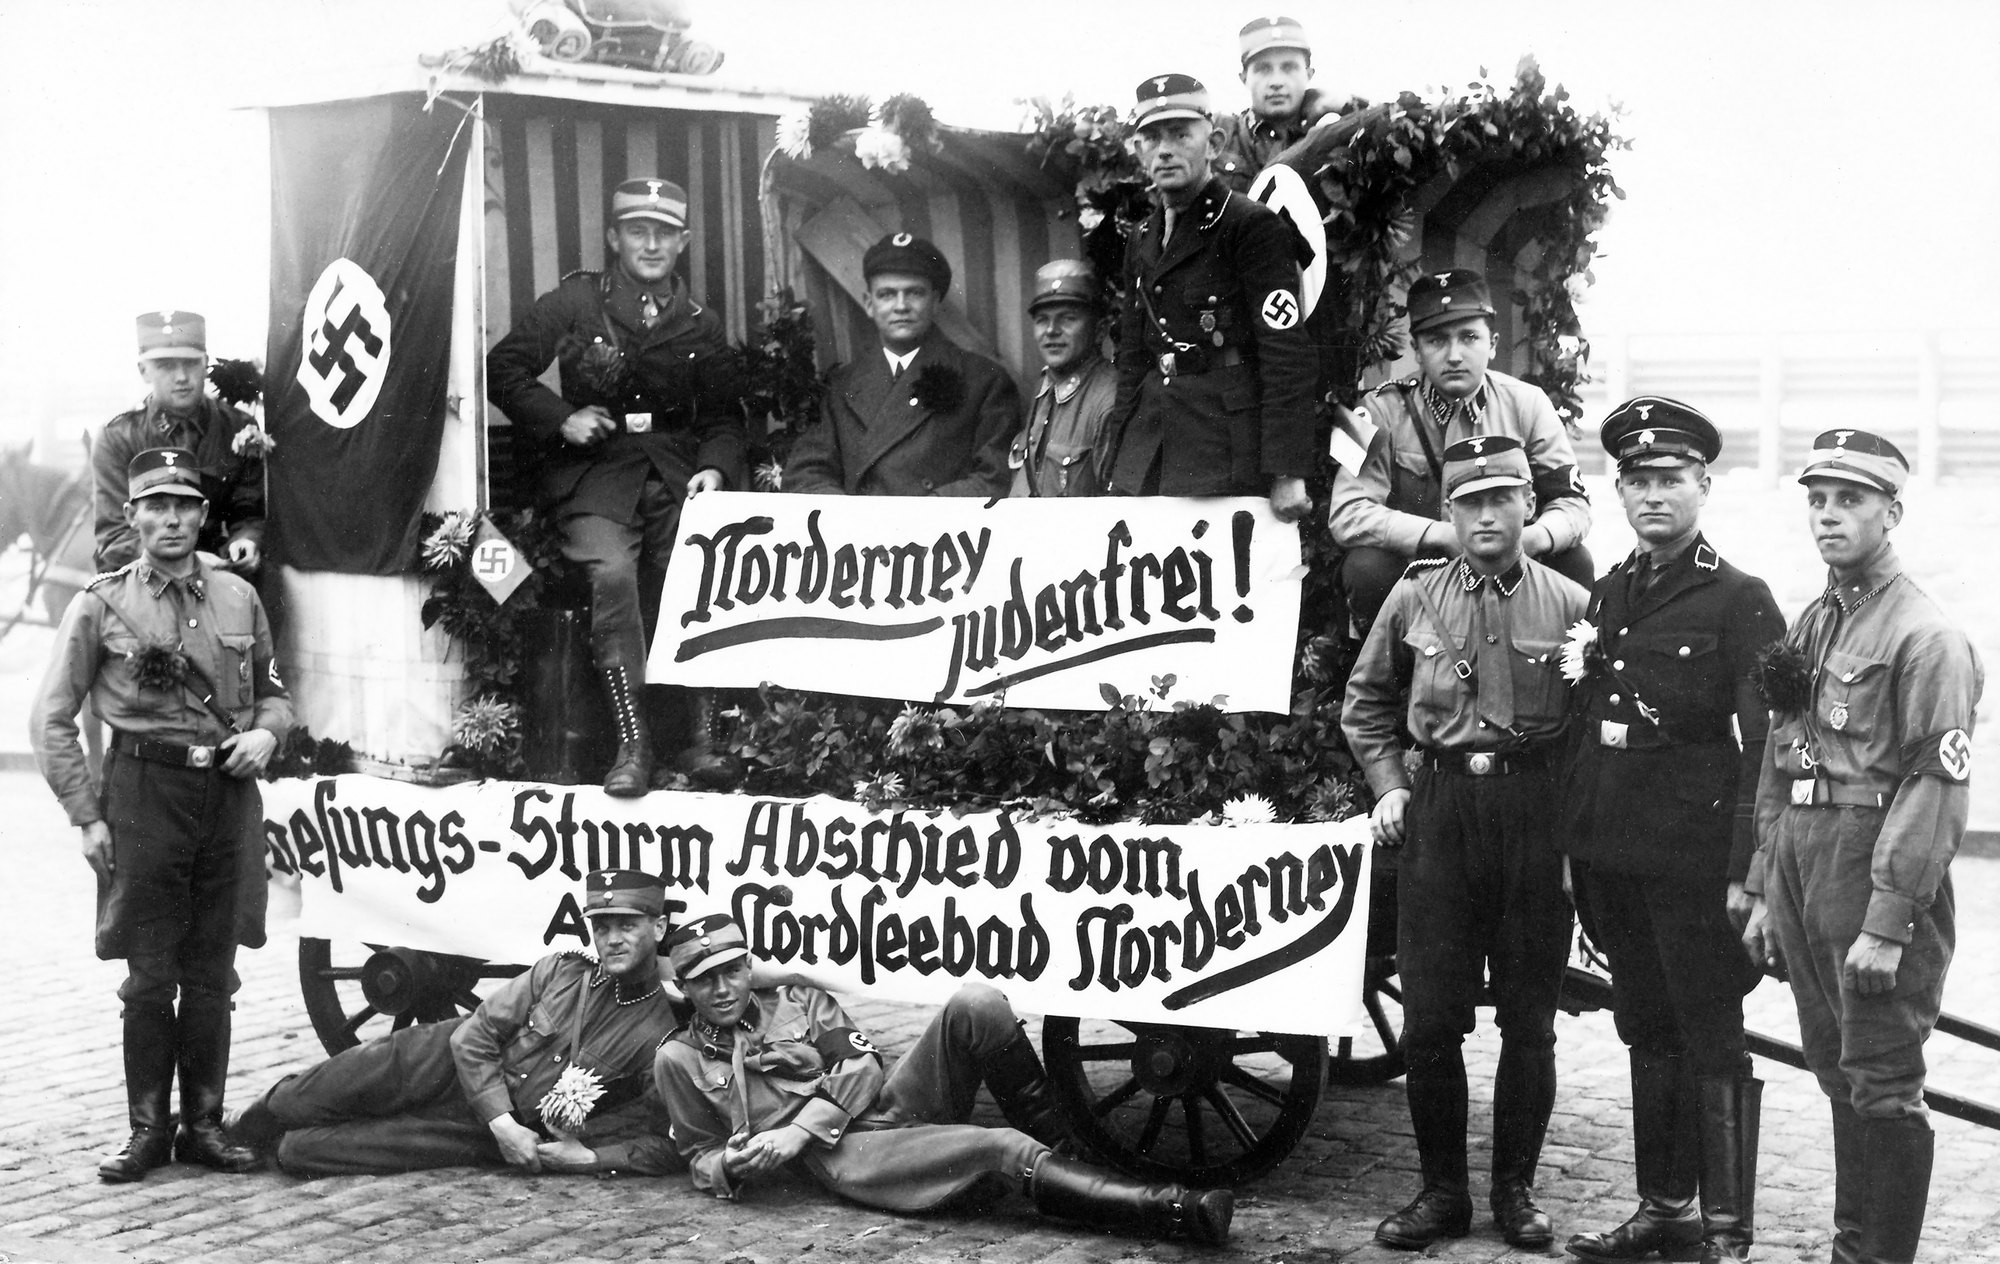 Norderney free of Jews